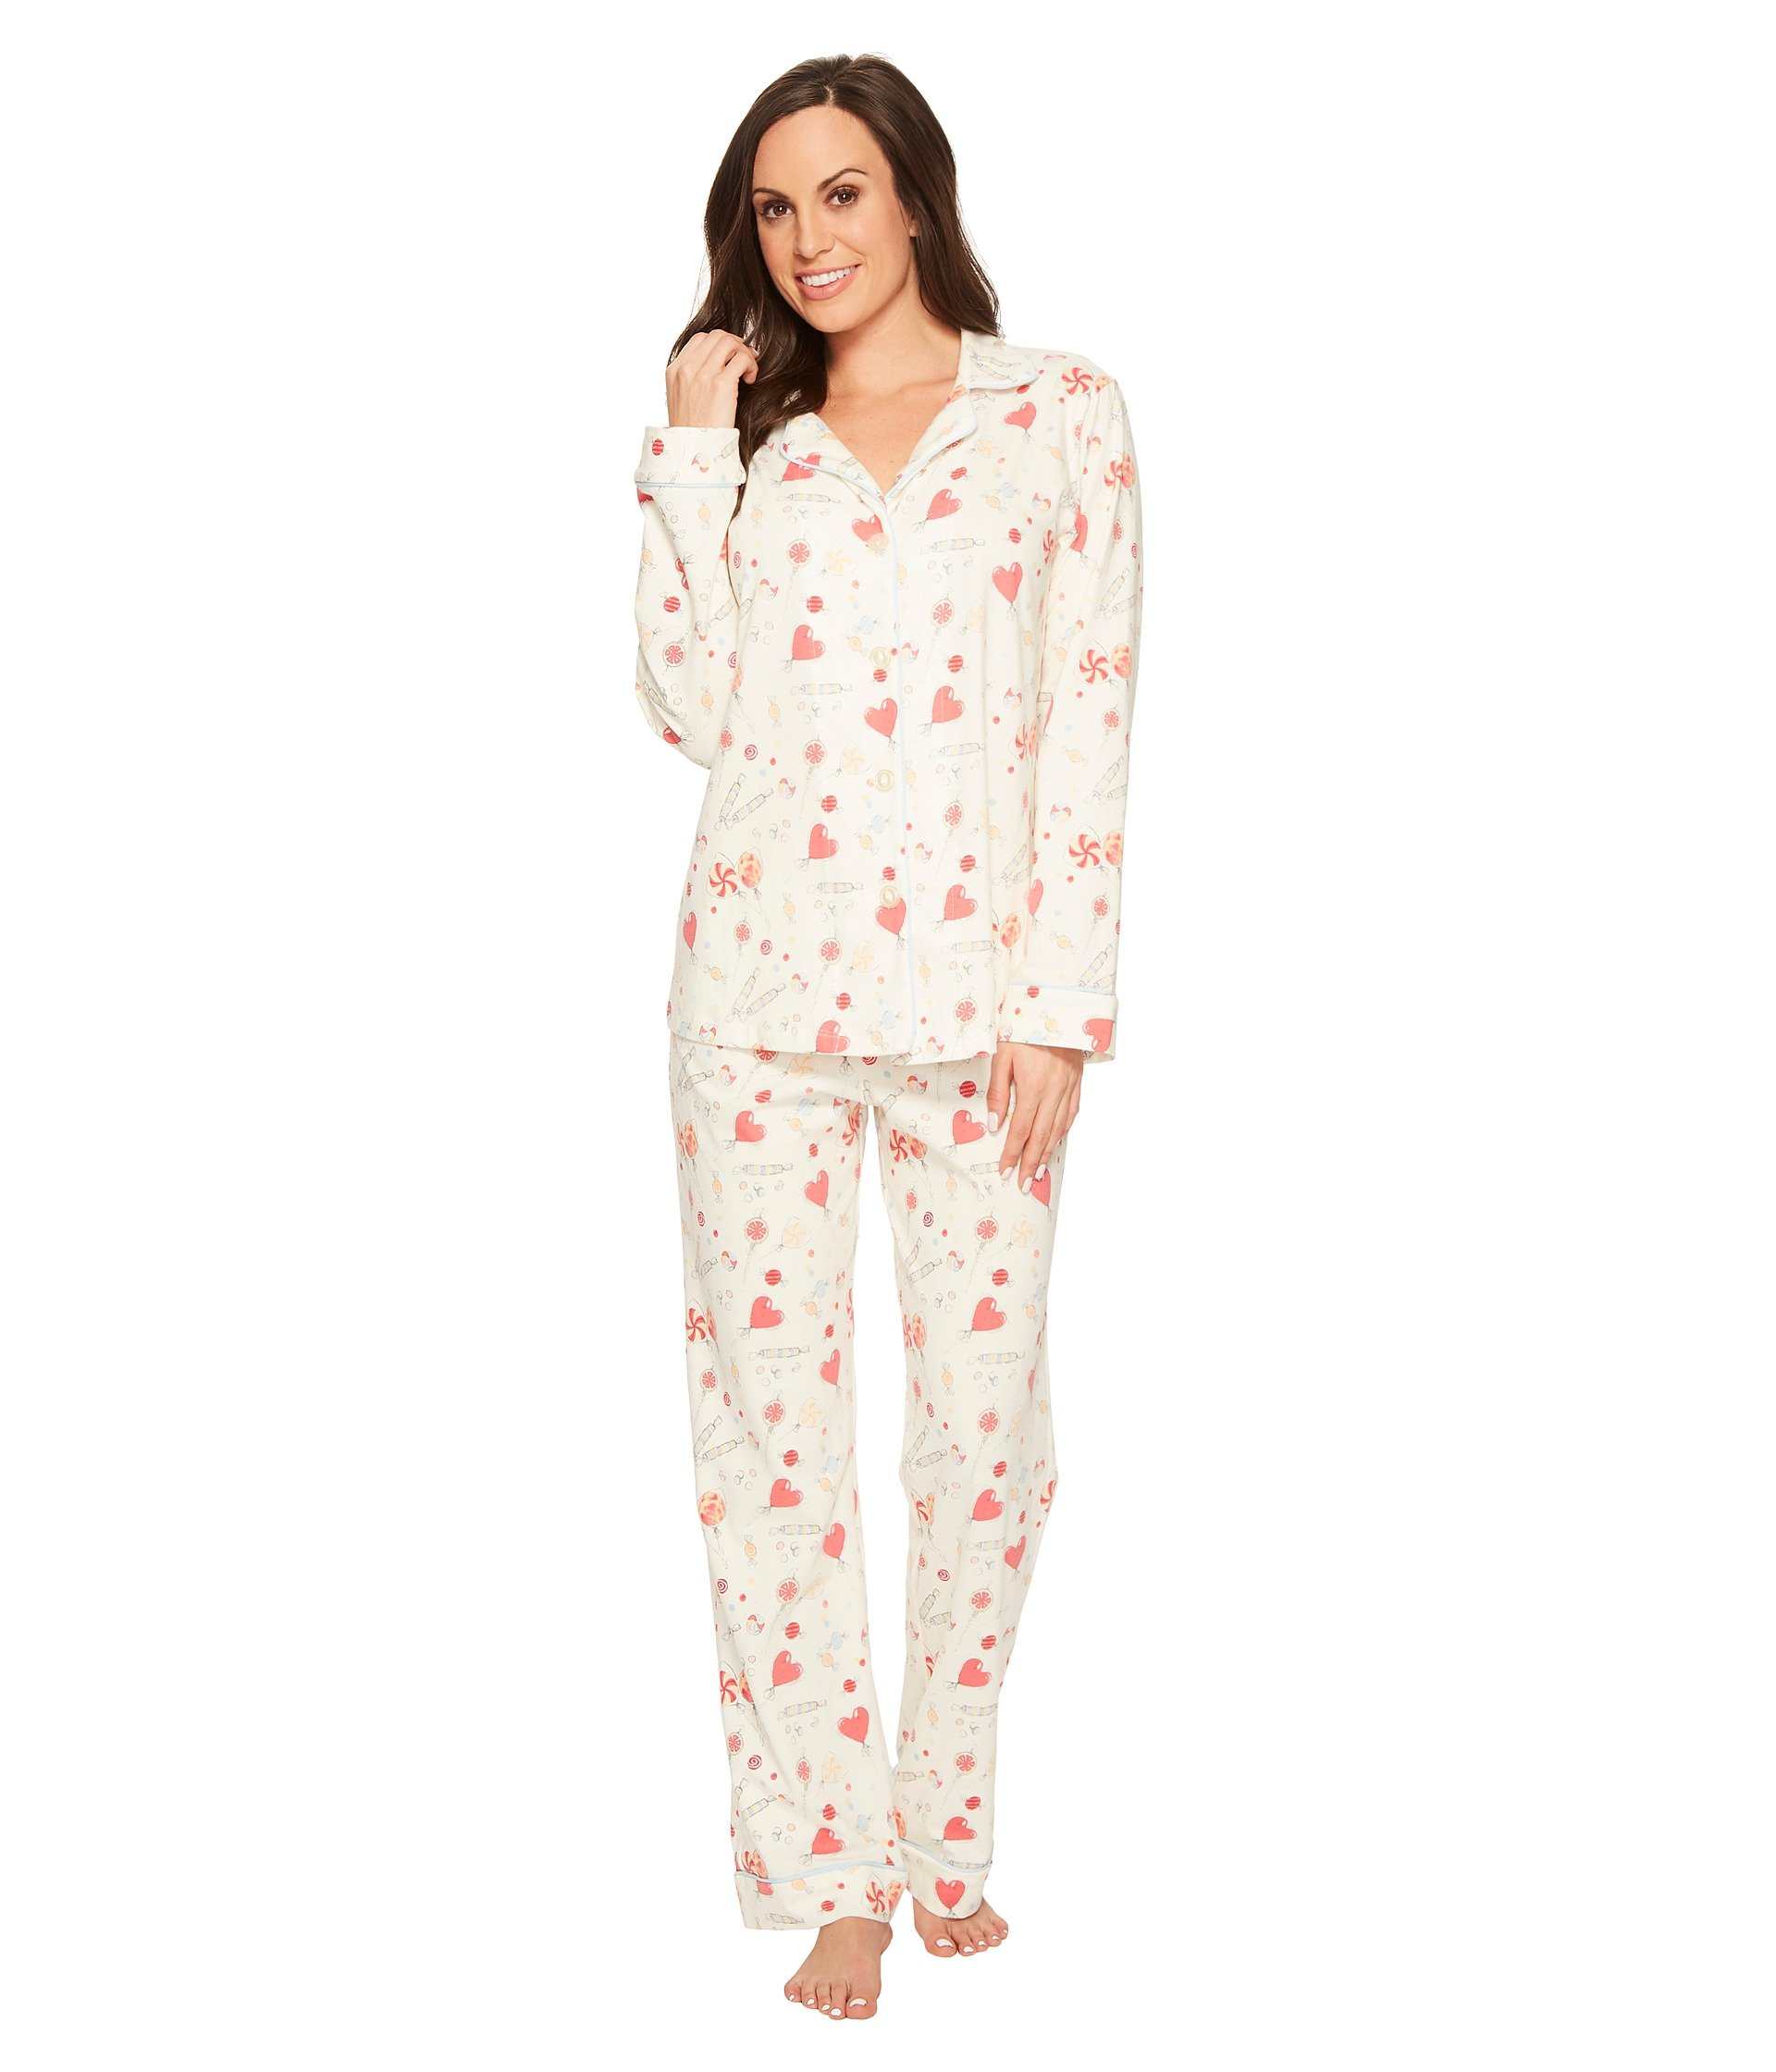 BedHead Women's Long Sleeve Classic Stretch Knit Pajama Set Sweet Tooth Medium